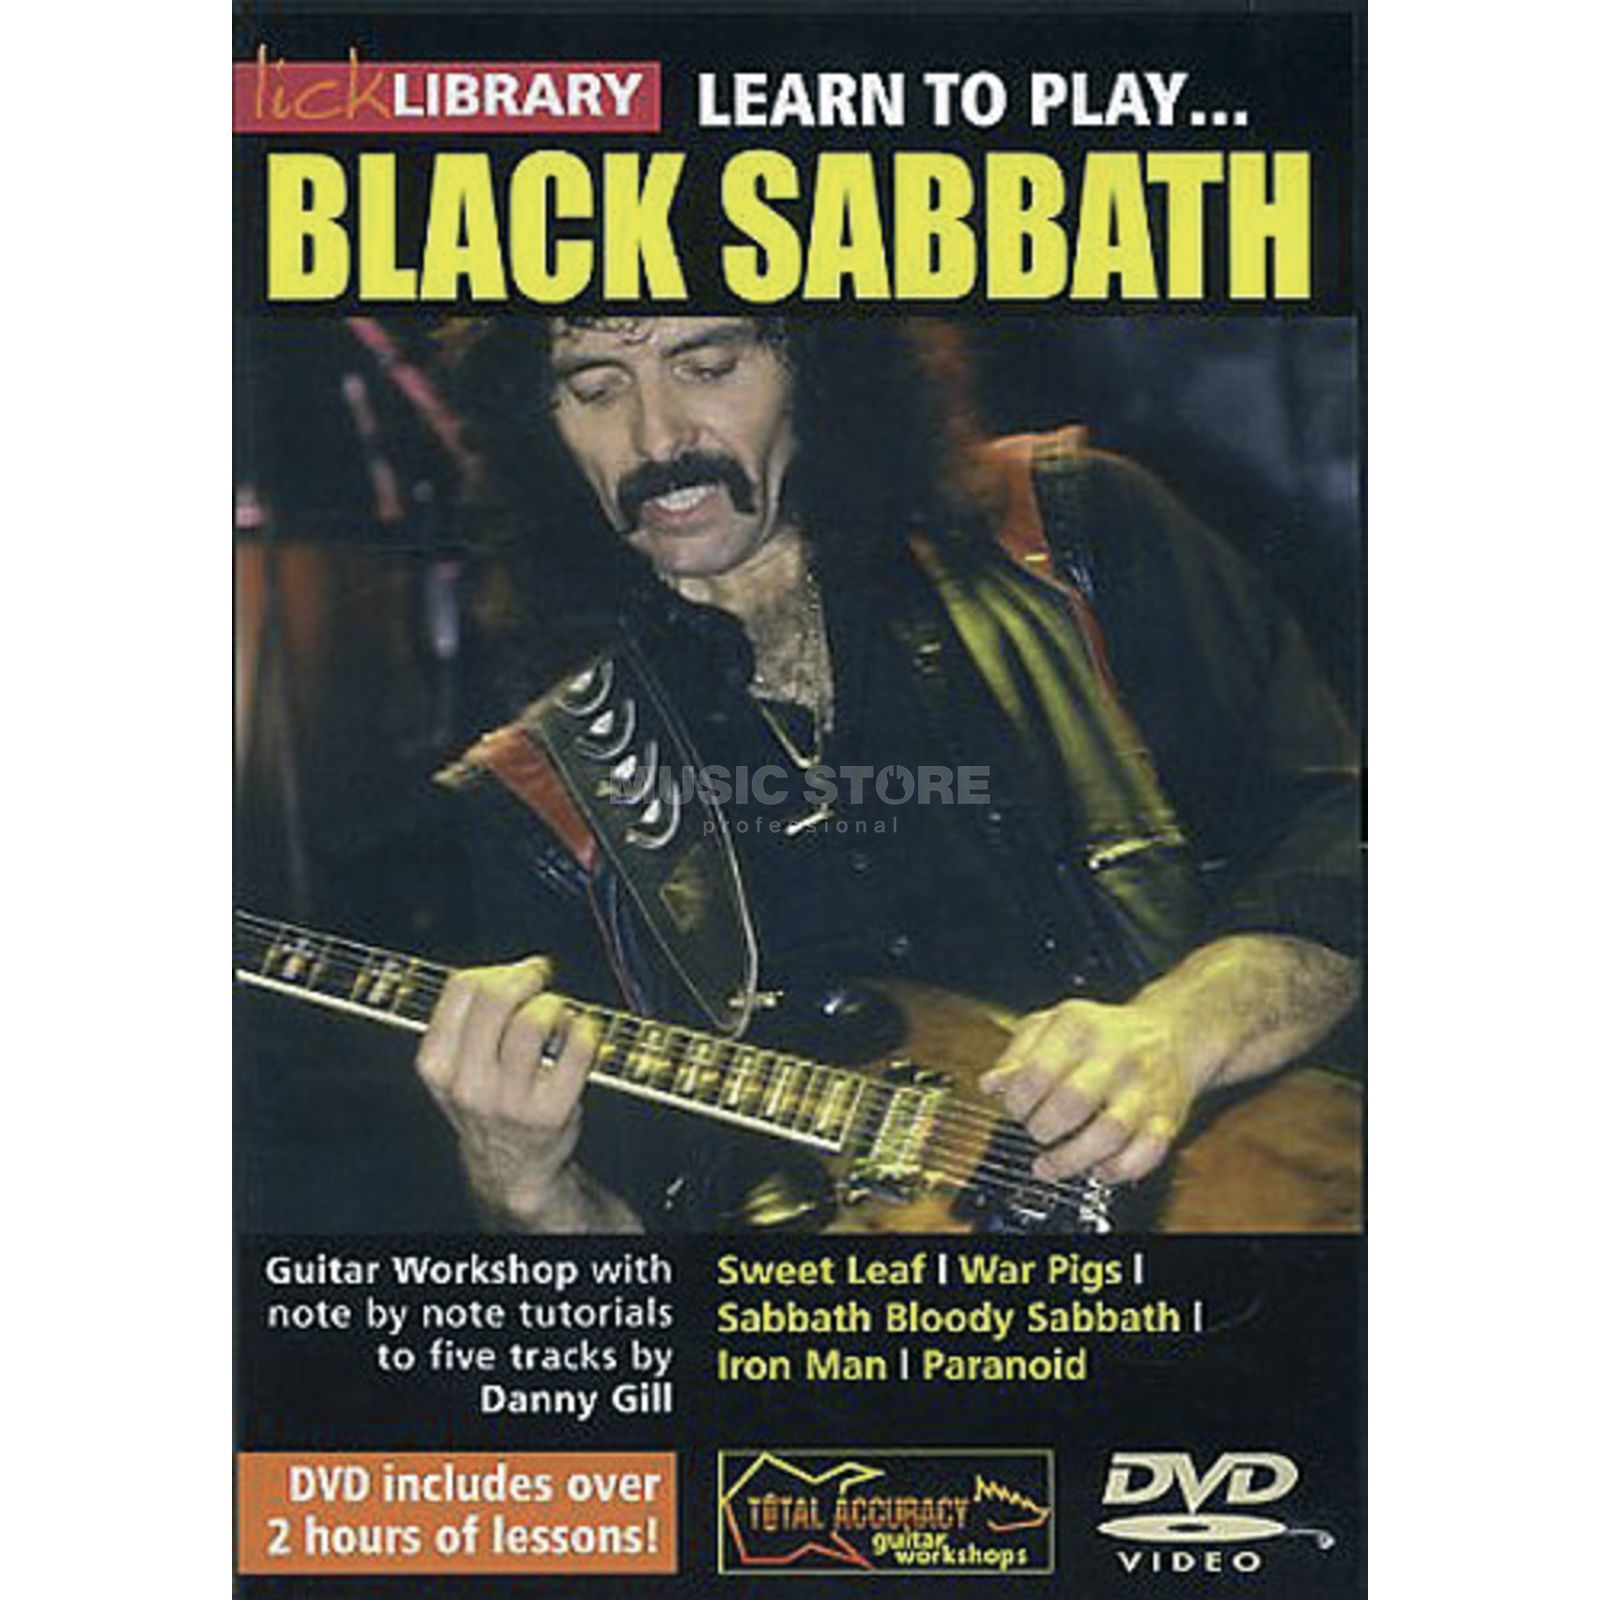 Roadrock International Lick Library: Learn To Play Black Sabbath DVD Produktbild